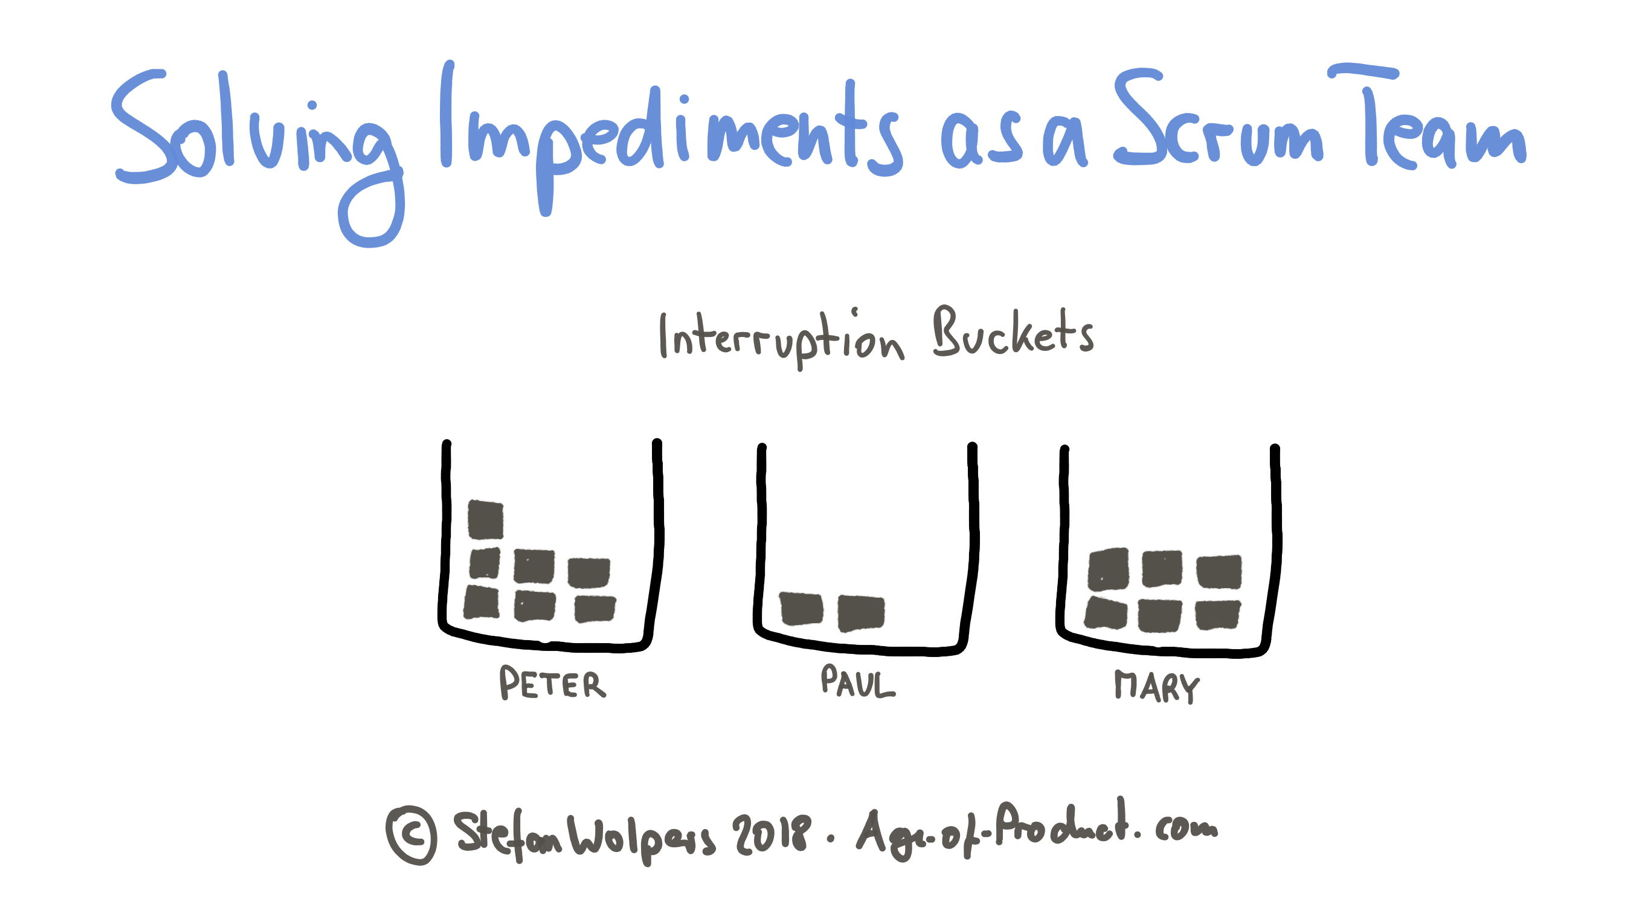 Version 1 of the interruption bucket — Solving Impediments as a Scrum Team